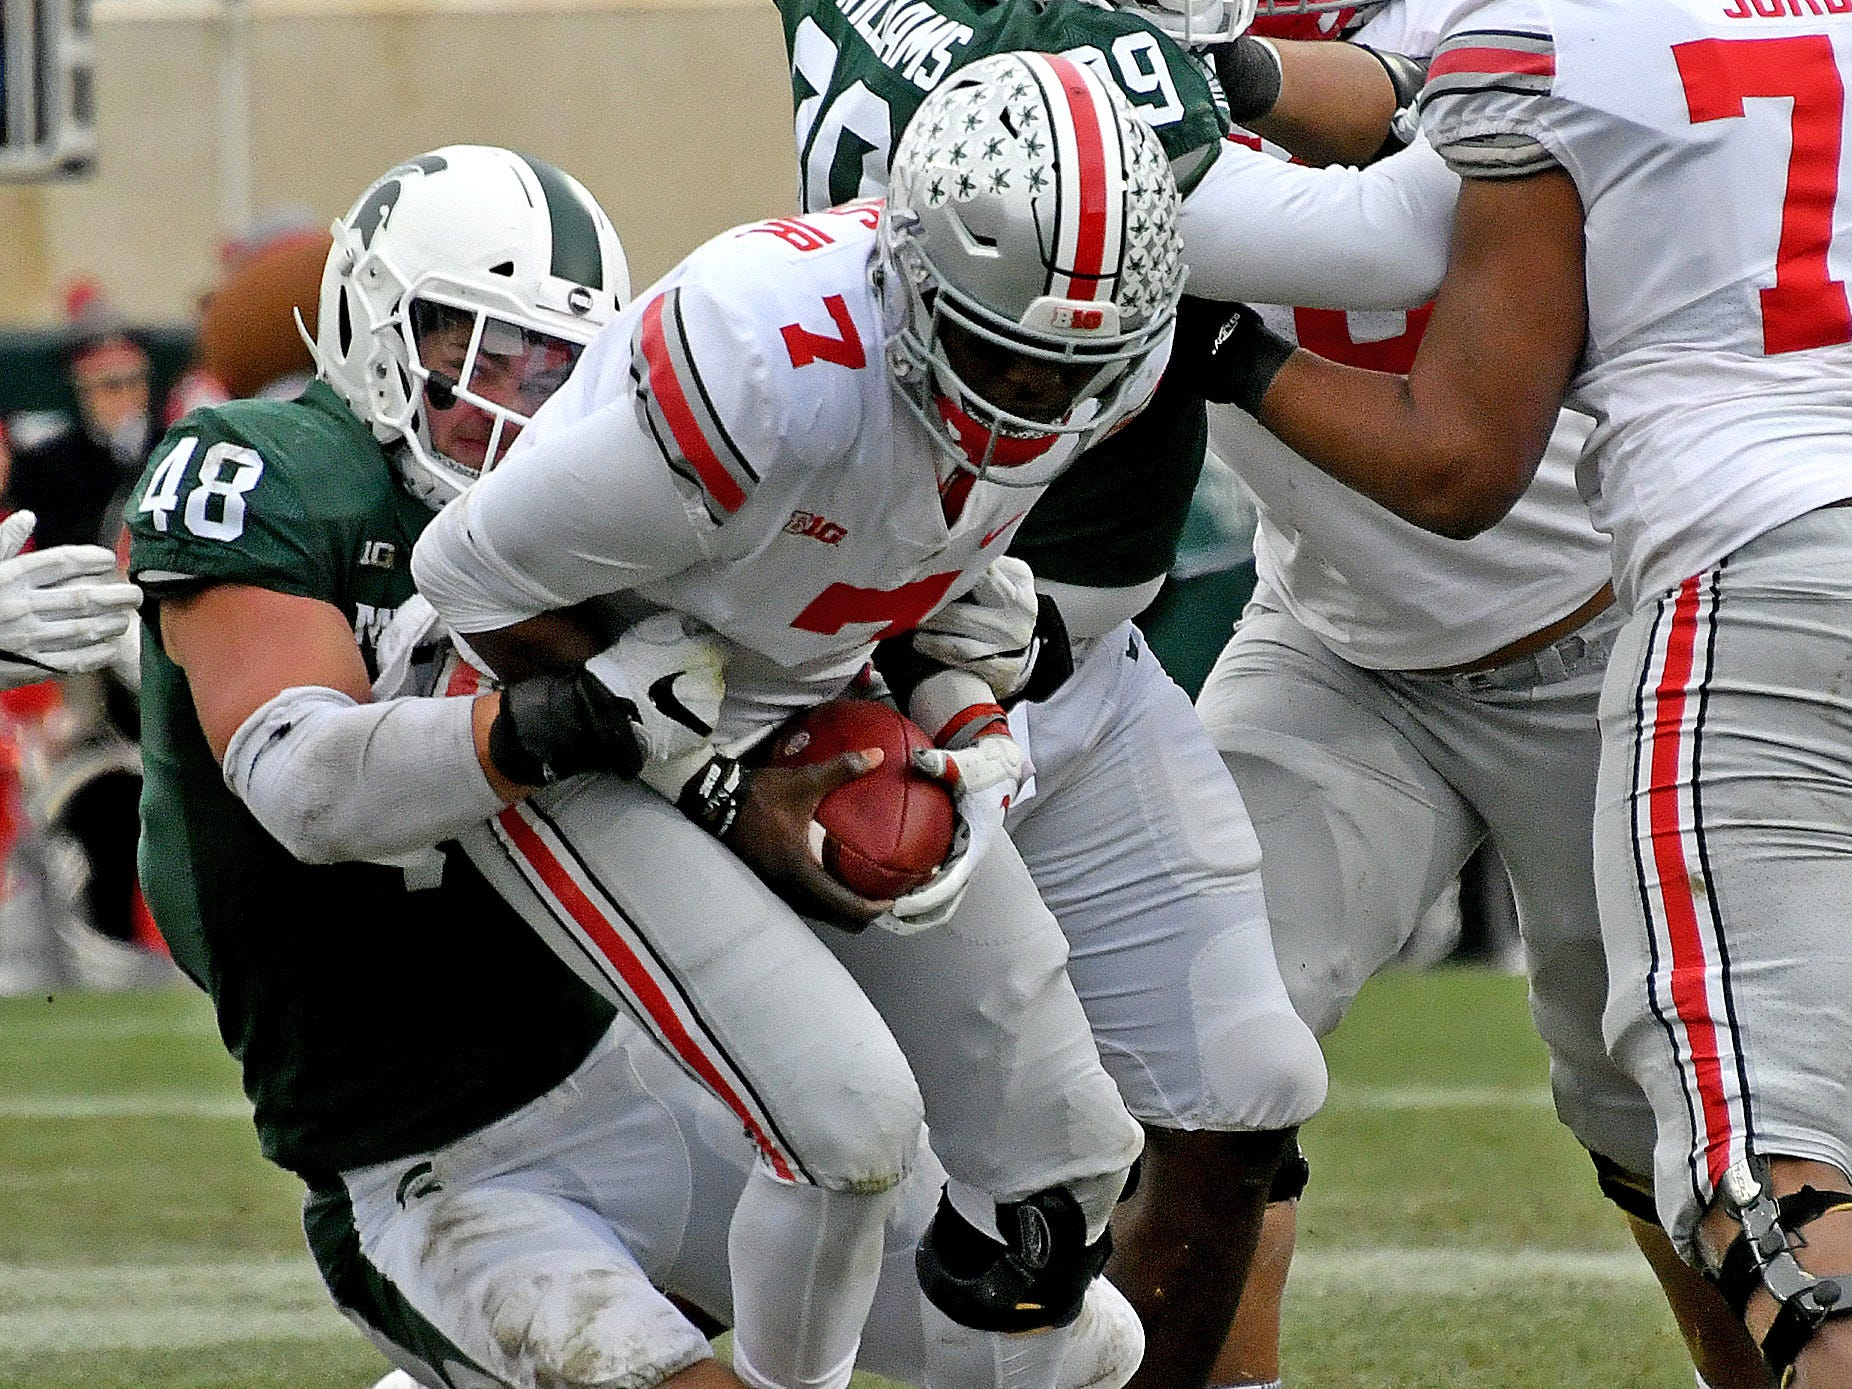 DEFENSE – DEFENSIVE END: Kenny Willekes (48) – The former walk-on had a breakout season in 2018, earning All-American honors as he was named Big Ten Defensive Lineman of the Year after recording 20.5 tackles for loss, including 8.5 sacks. A broken leg in the bowl game likely will keep him out of spring practice.